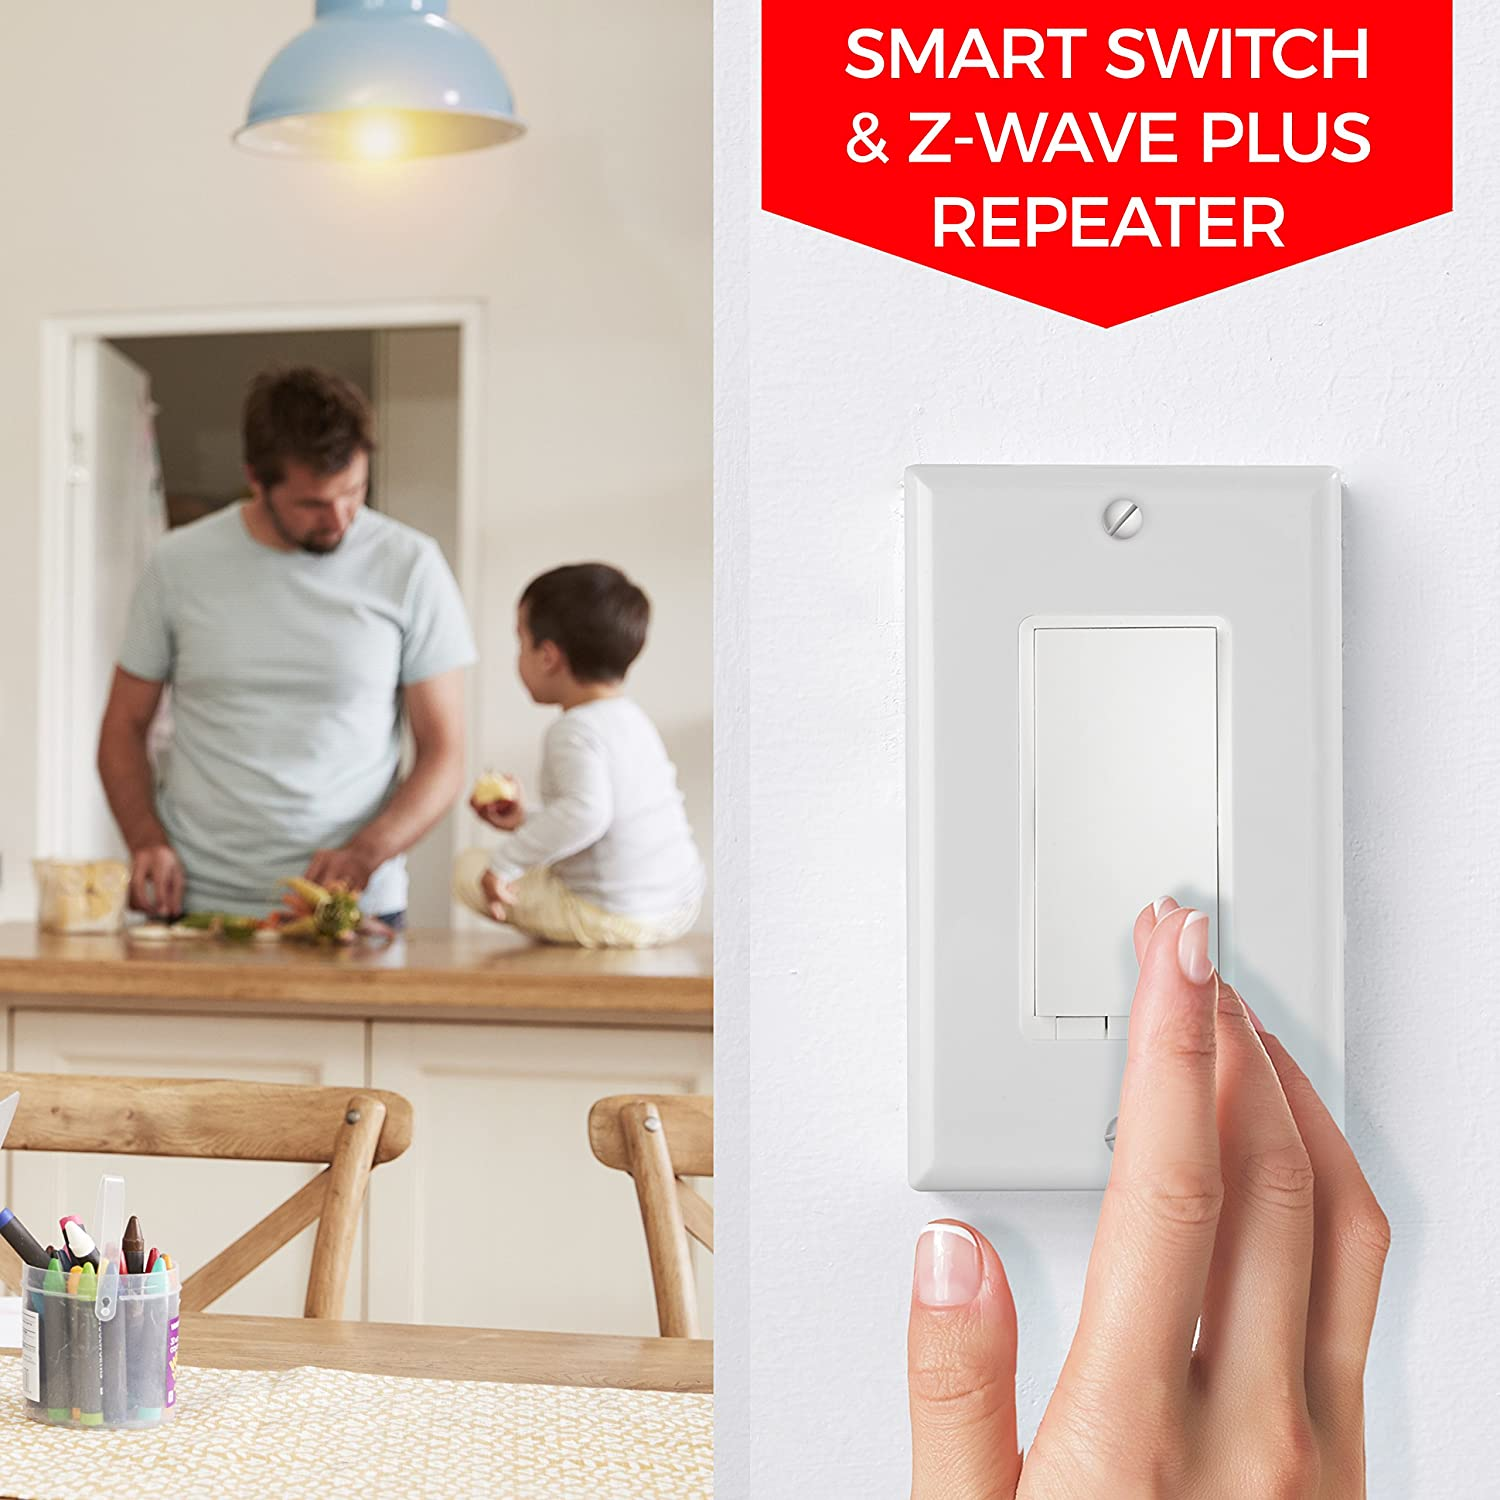 Z Wave Dimmer Switch Built In Repeater Zwave Plus Light And Fan Wiring 2 Switches Also Ceiling 3 Way Wall Paddle Works With Samsung Smartthings Wink Hub Easy 4